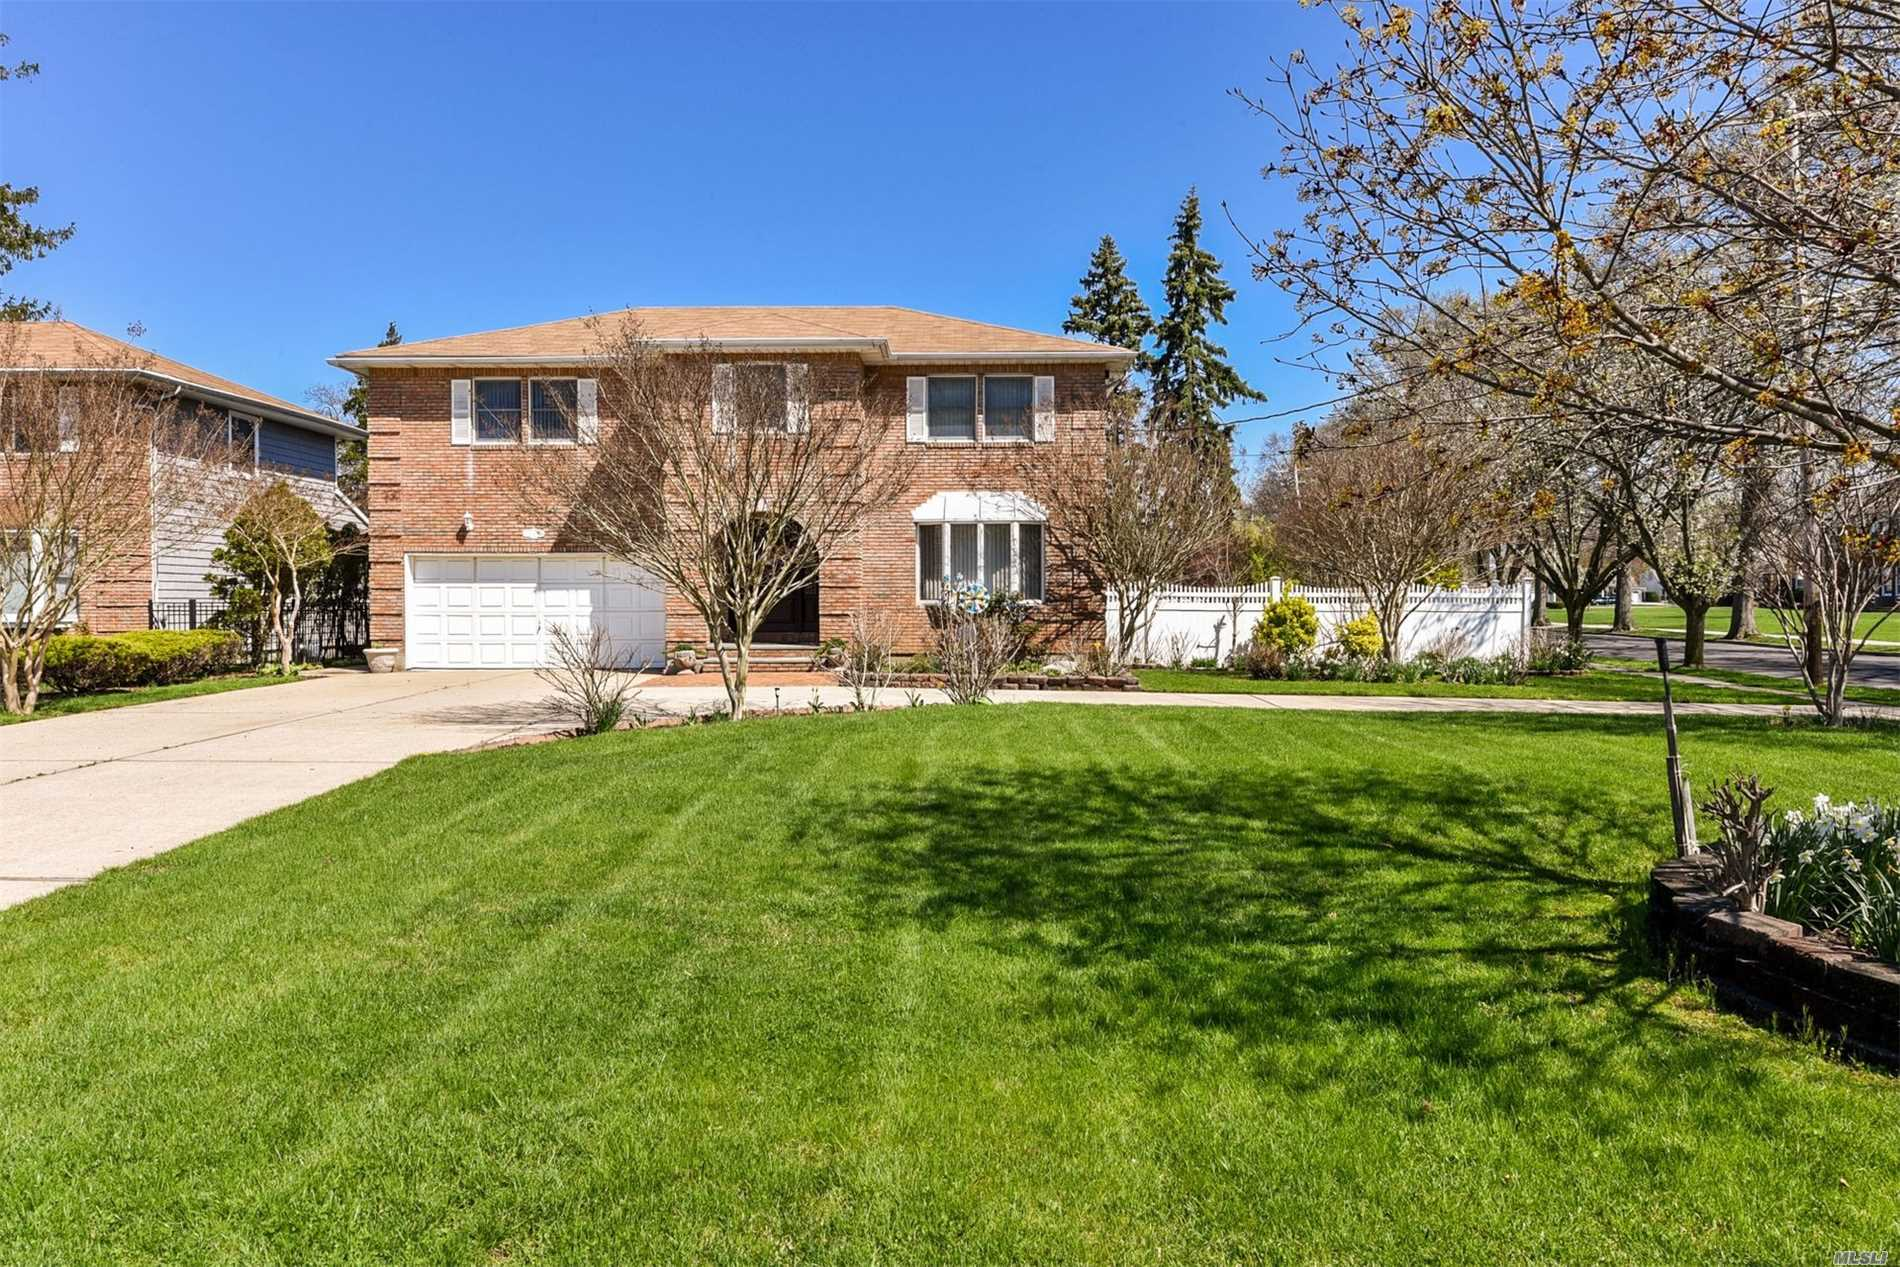 Clean & Meticulous Brick Colonial Set On .33 Acres In Desirable Wantagh Woods.This Home Features Entry Foyer W/Tiled Flrs, 2 Zone Cac, Andersen Windows, Eik W/Custom Cabinetry, SS Appls, Granite Counter Tops & Skylight, Fdr, Liv Rm, Den W/Vaulted Ceiling, Wood Burning Fireplace & Skylight, Master Ensuite, 3 Bedrooms, 1.5Baths, Full Basement W/Ose, 2 Car Attached Garage, Huge Fully Fenced Private Yard Perfect For Entertaining, Close To Schools, Shopping, Restaurant & Transportation.